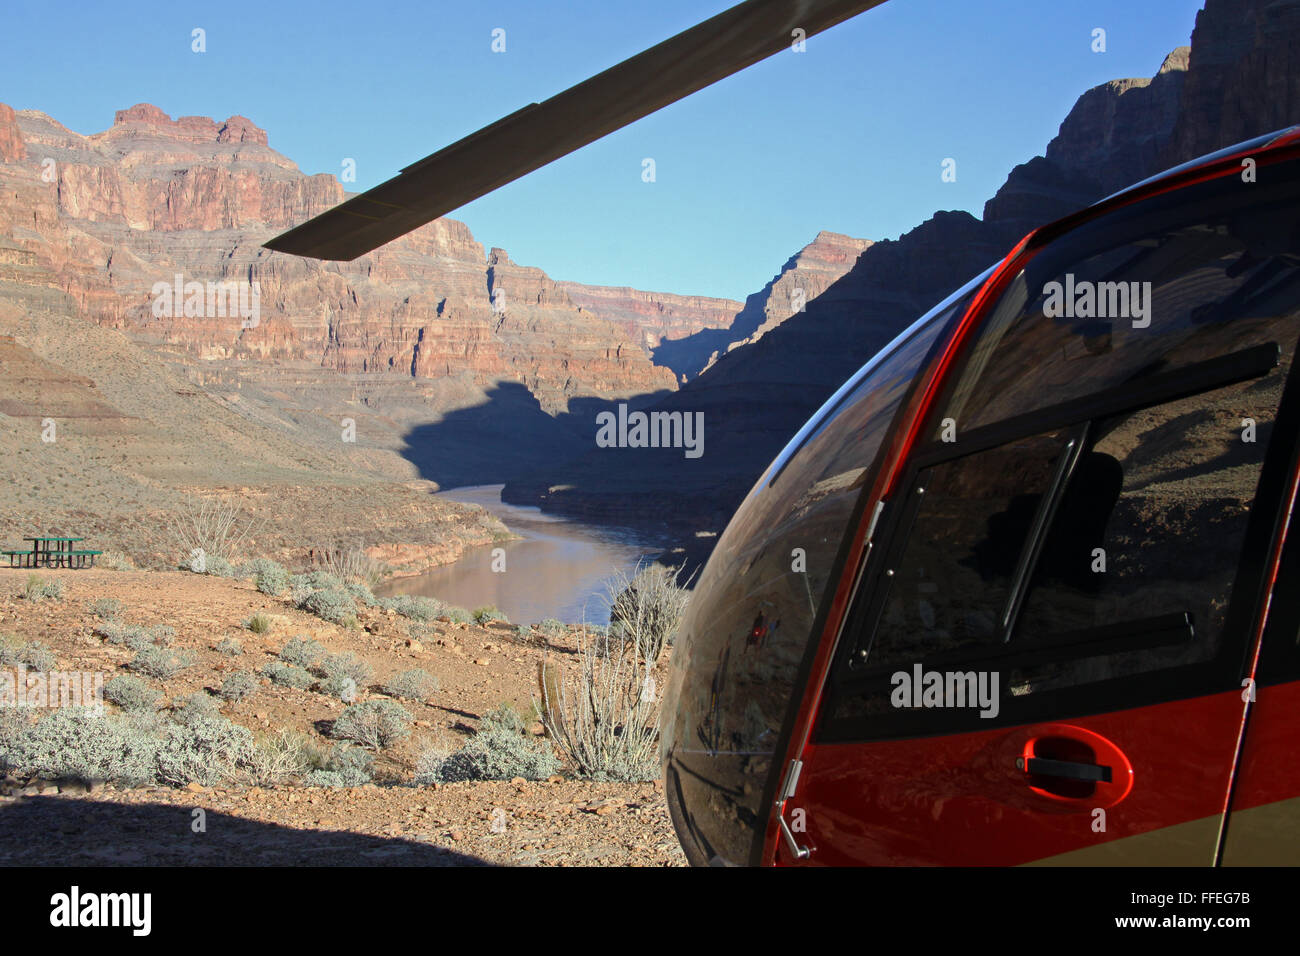 Grand Canyon helicopter tours, flying from Boulder City Airport to the West Rim, Nevada, USA - Stock Image